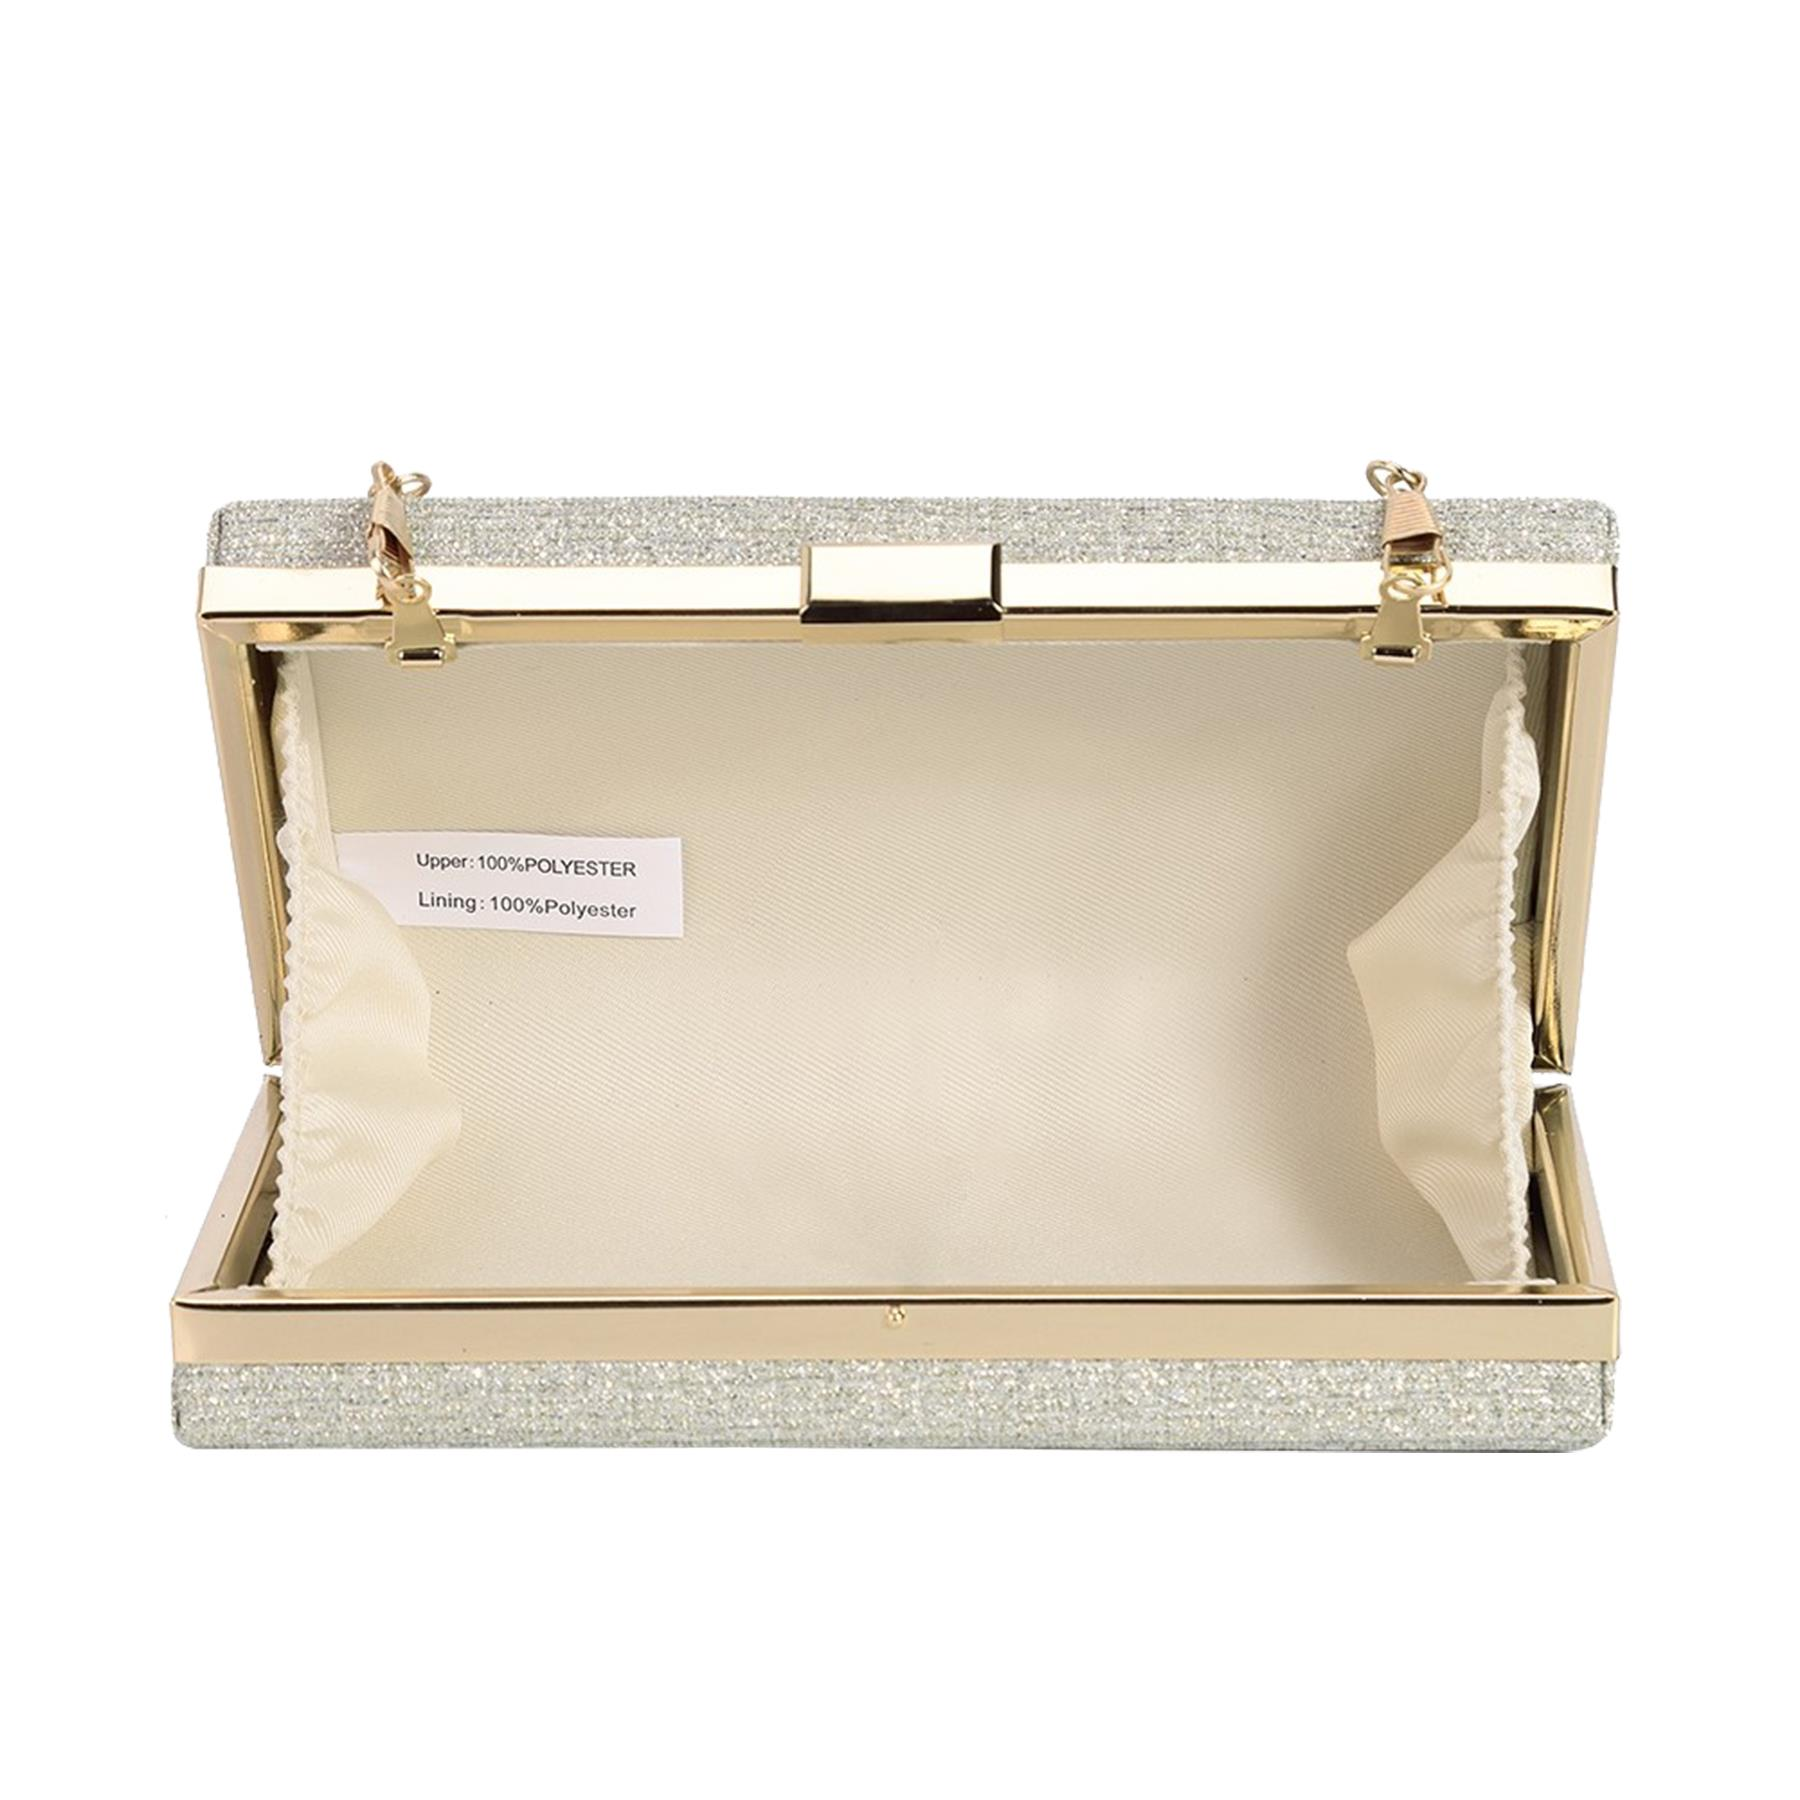 New-Sparkly-Shimmer-Glitter-Chain-Ladies-Hard-Compact-Bridal-Clutch-Bag-Purse thumbnail 7